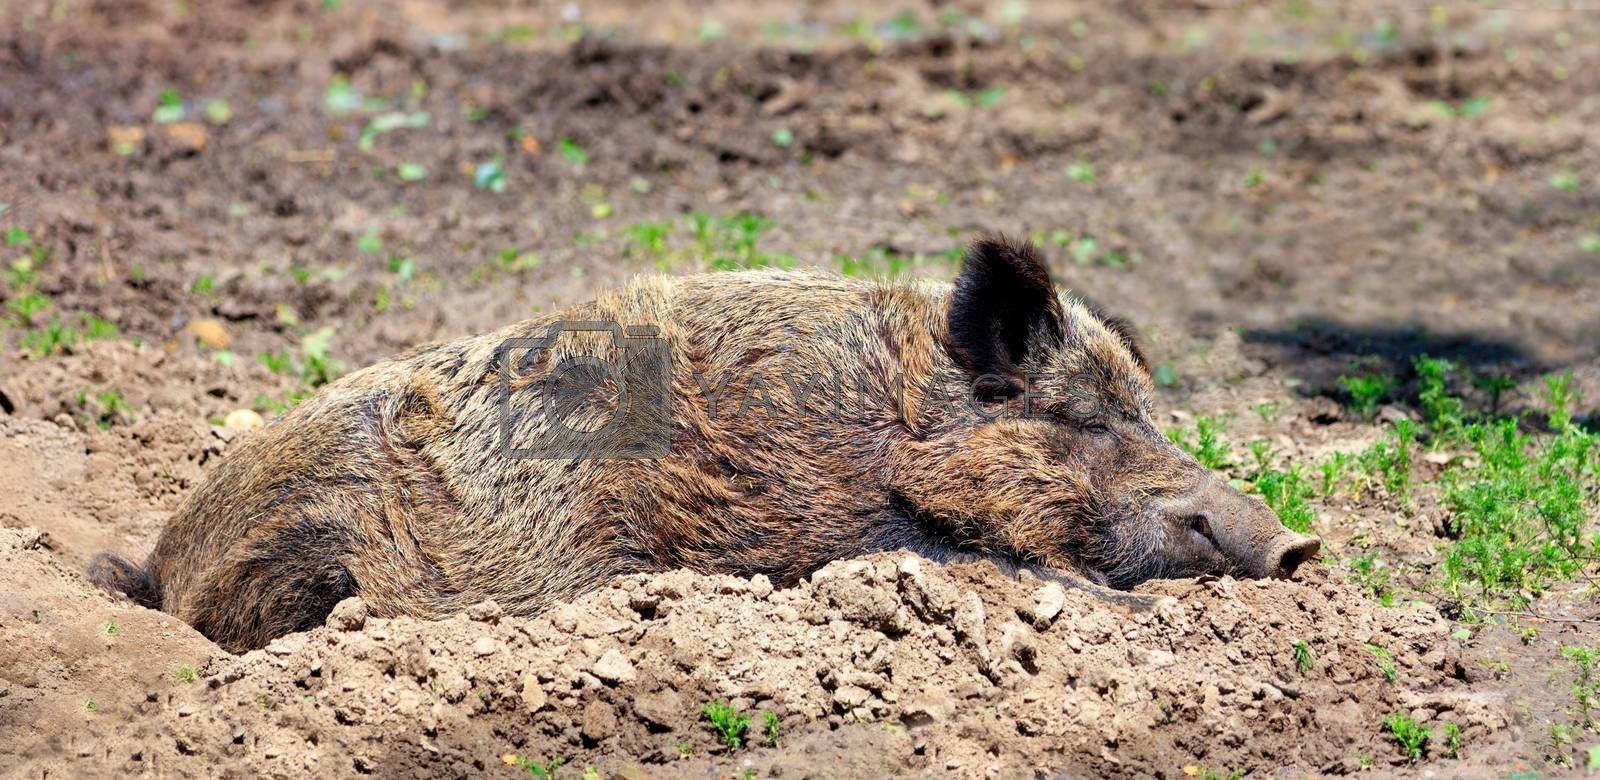 A large Eurasian boar sleeps peacefully and rests in the mud and takes warm sun baths.